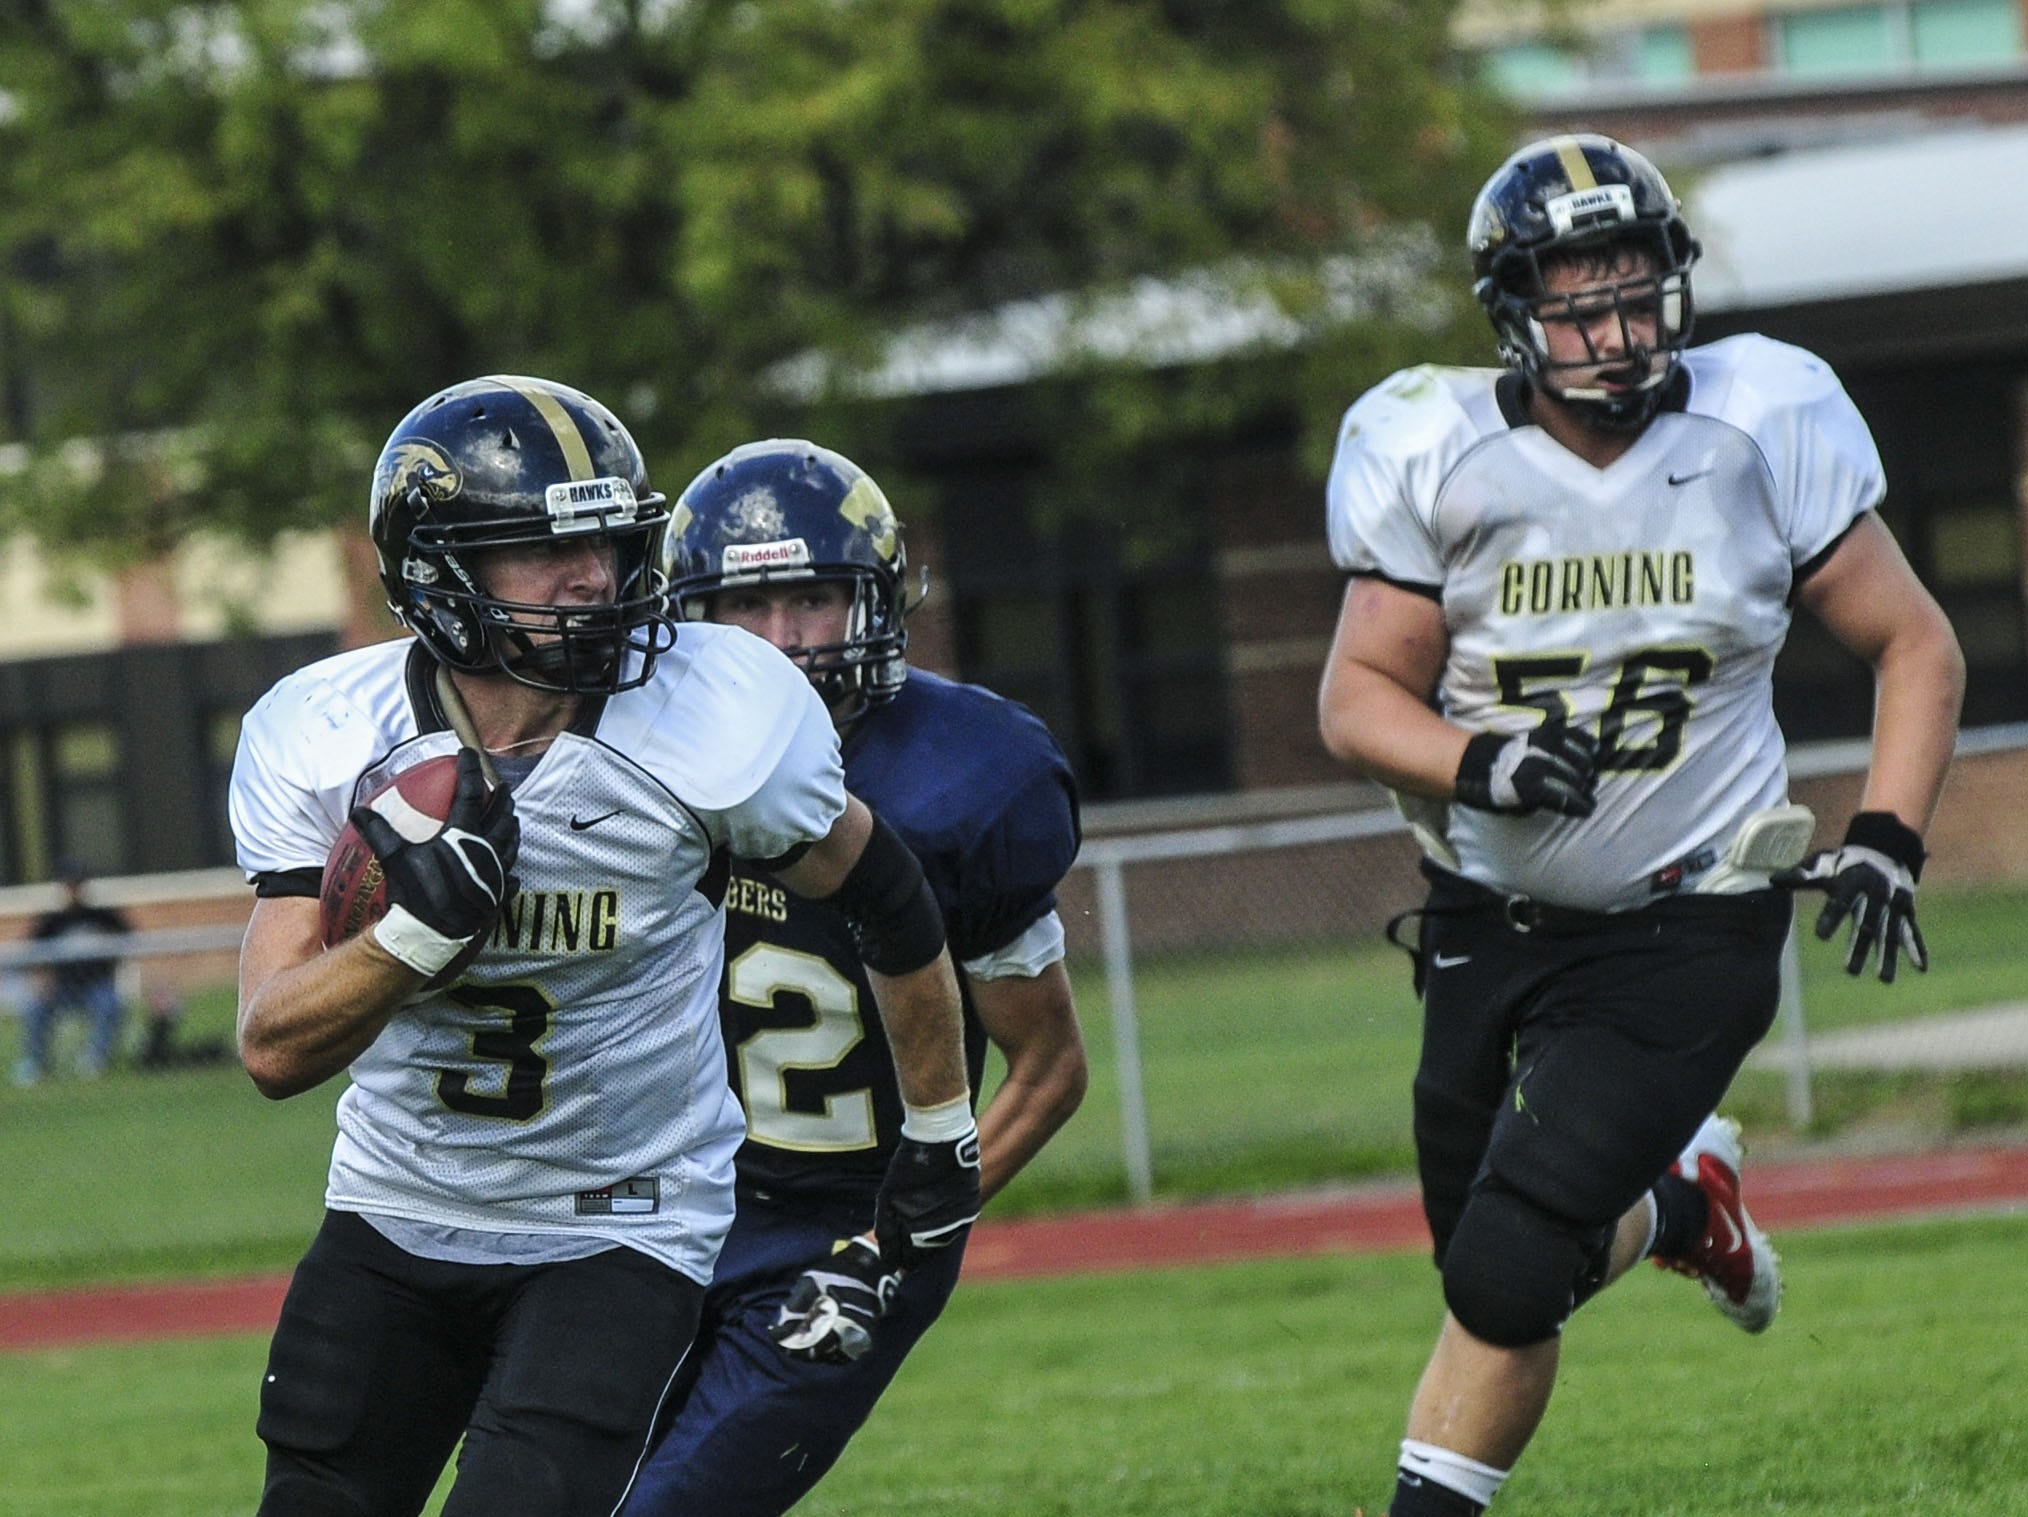 From 2013: Corning's Sam Crusha runs for a touchdown after recovering a fumble against Susquehanna Valley on Saturday. Corning hung on for a 28-27 victory.